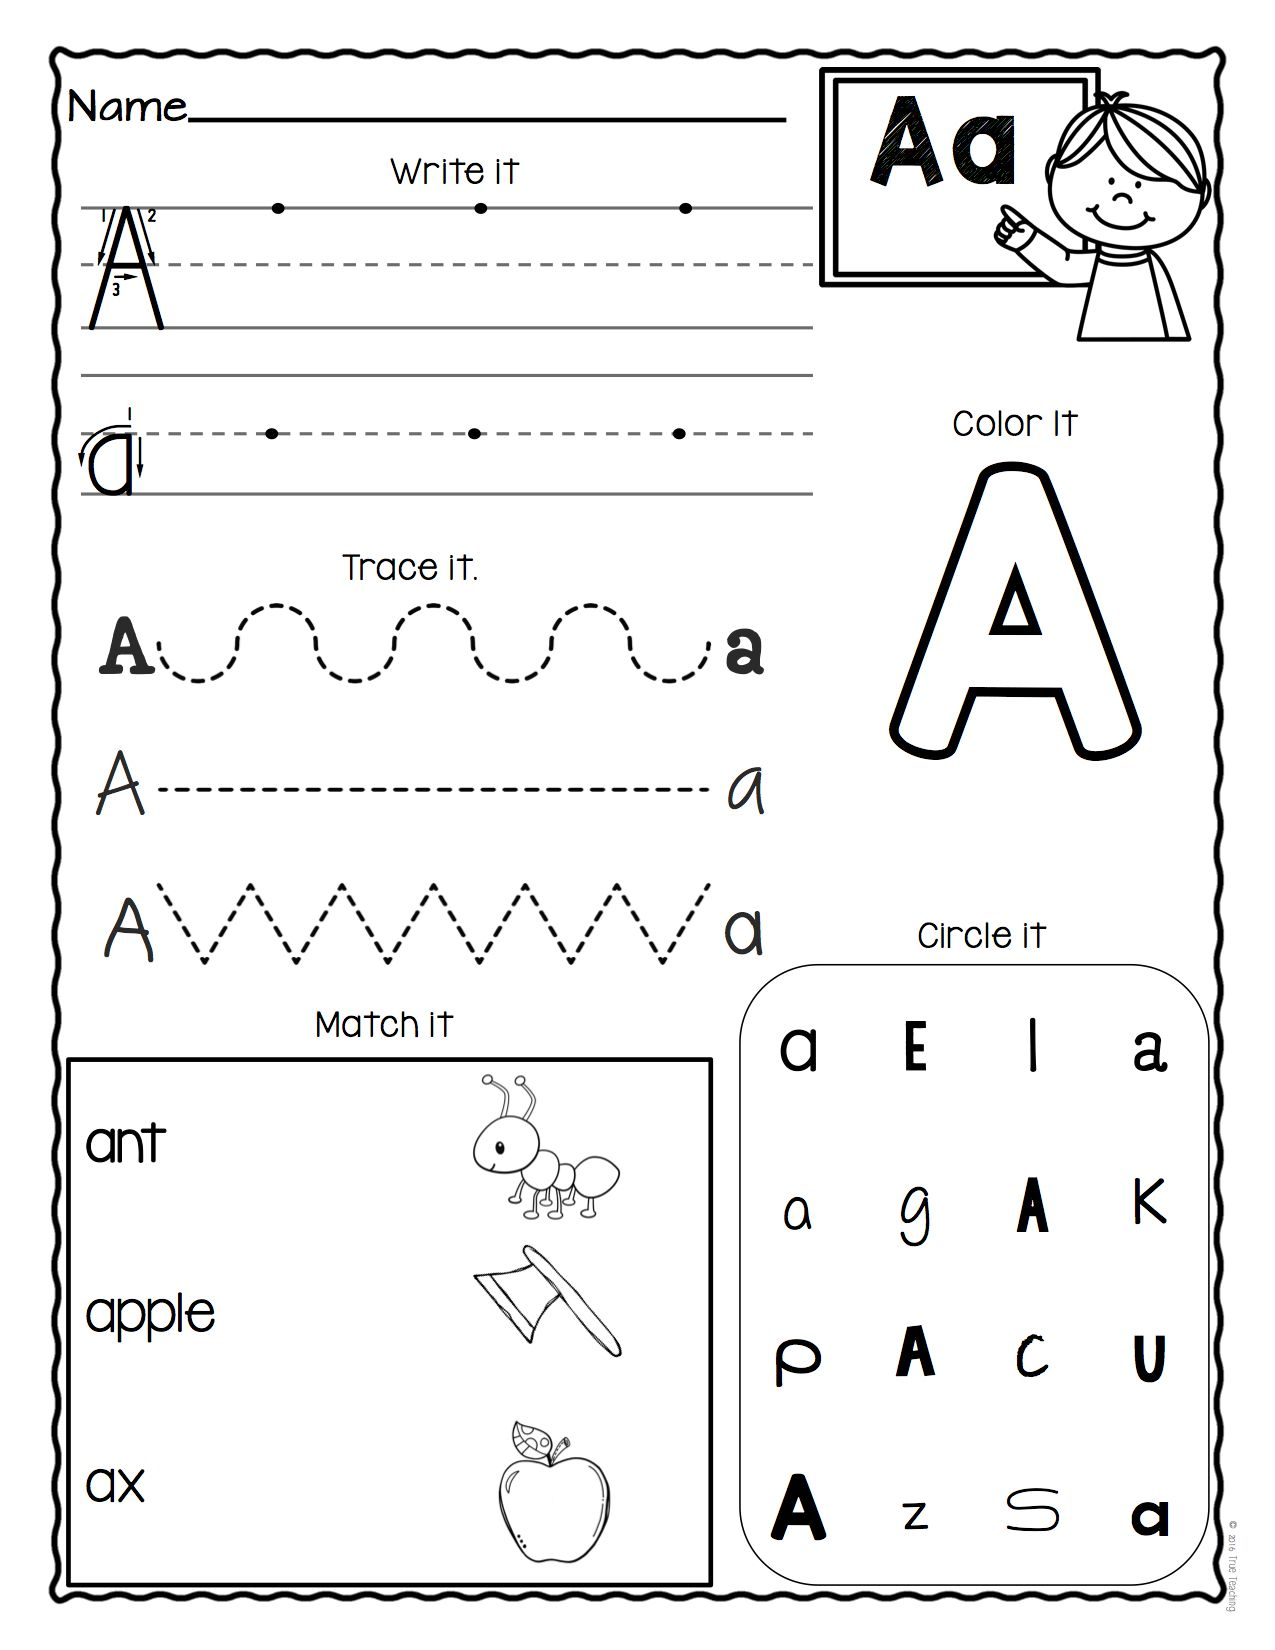 A-Z Letter Worksheets (Set 3) | Alphabet Worksheets within Letter I Worksheets For Kindergarten